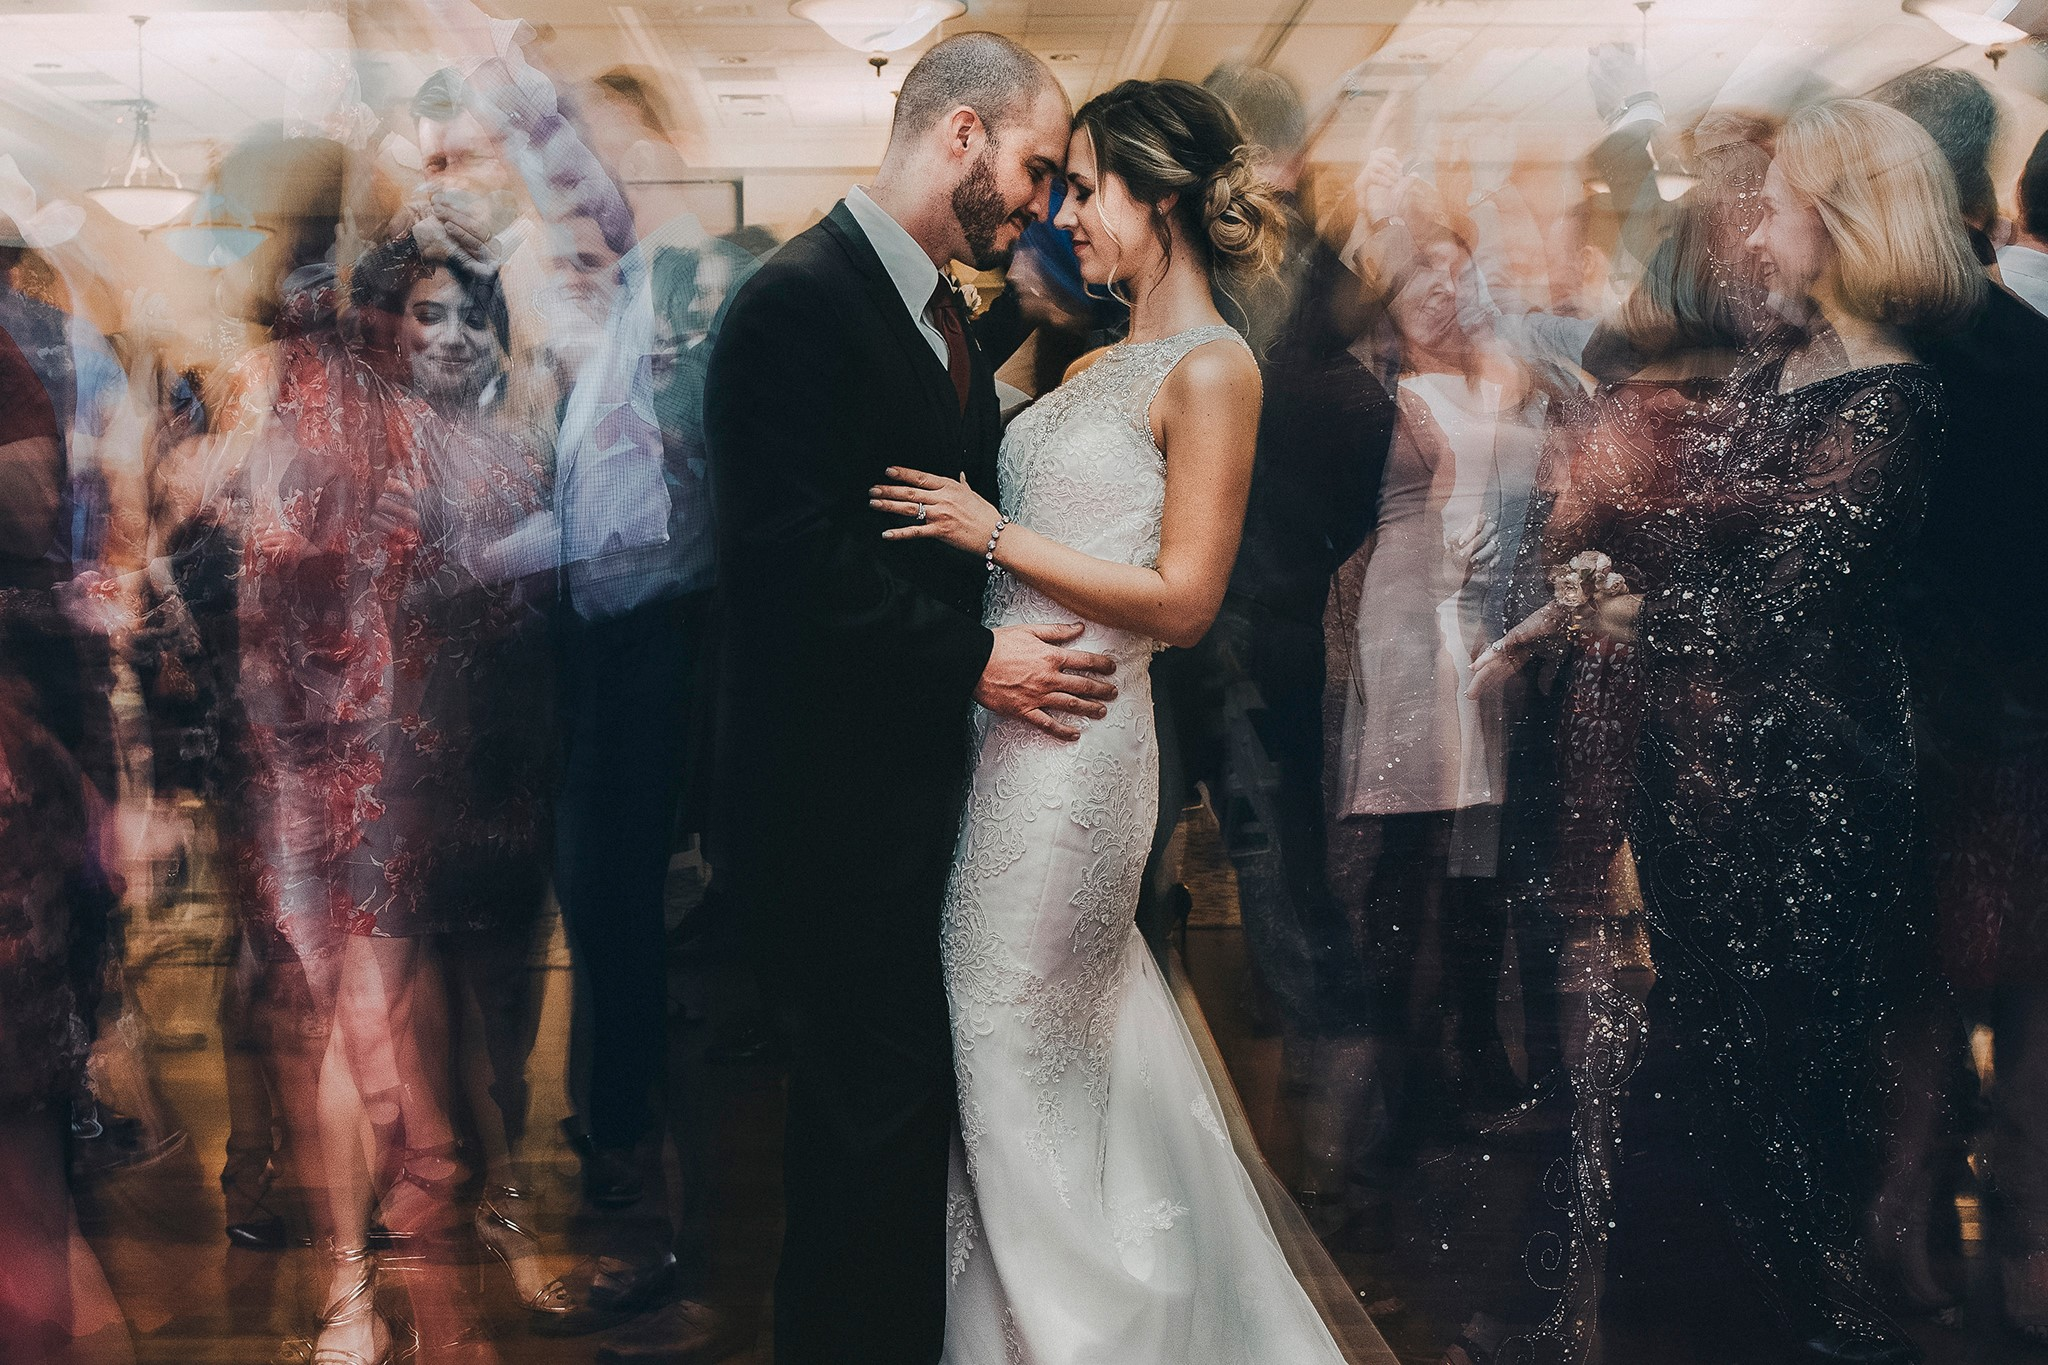 Bride and groom in the middle of the dance floor as their party is slowed down behind them. A perfect and unique wedding photo